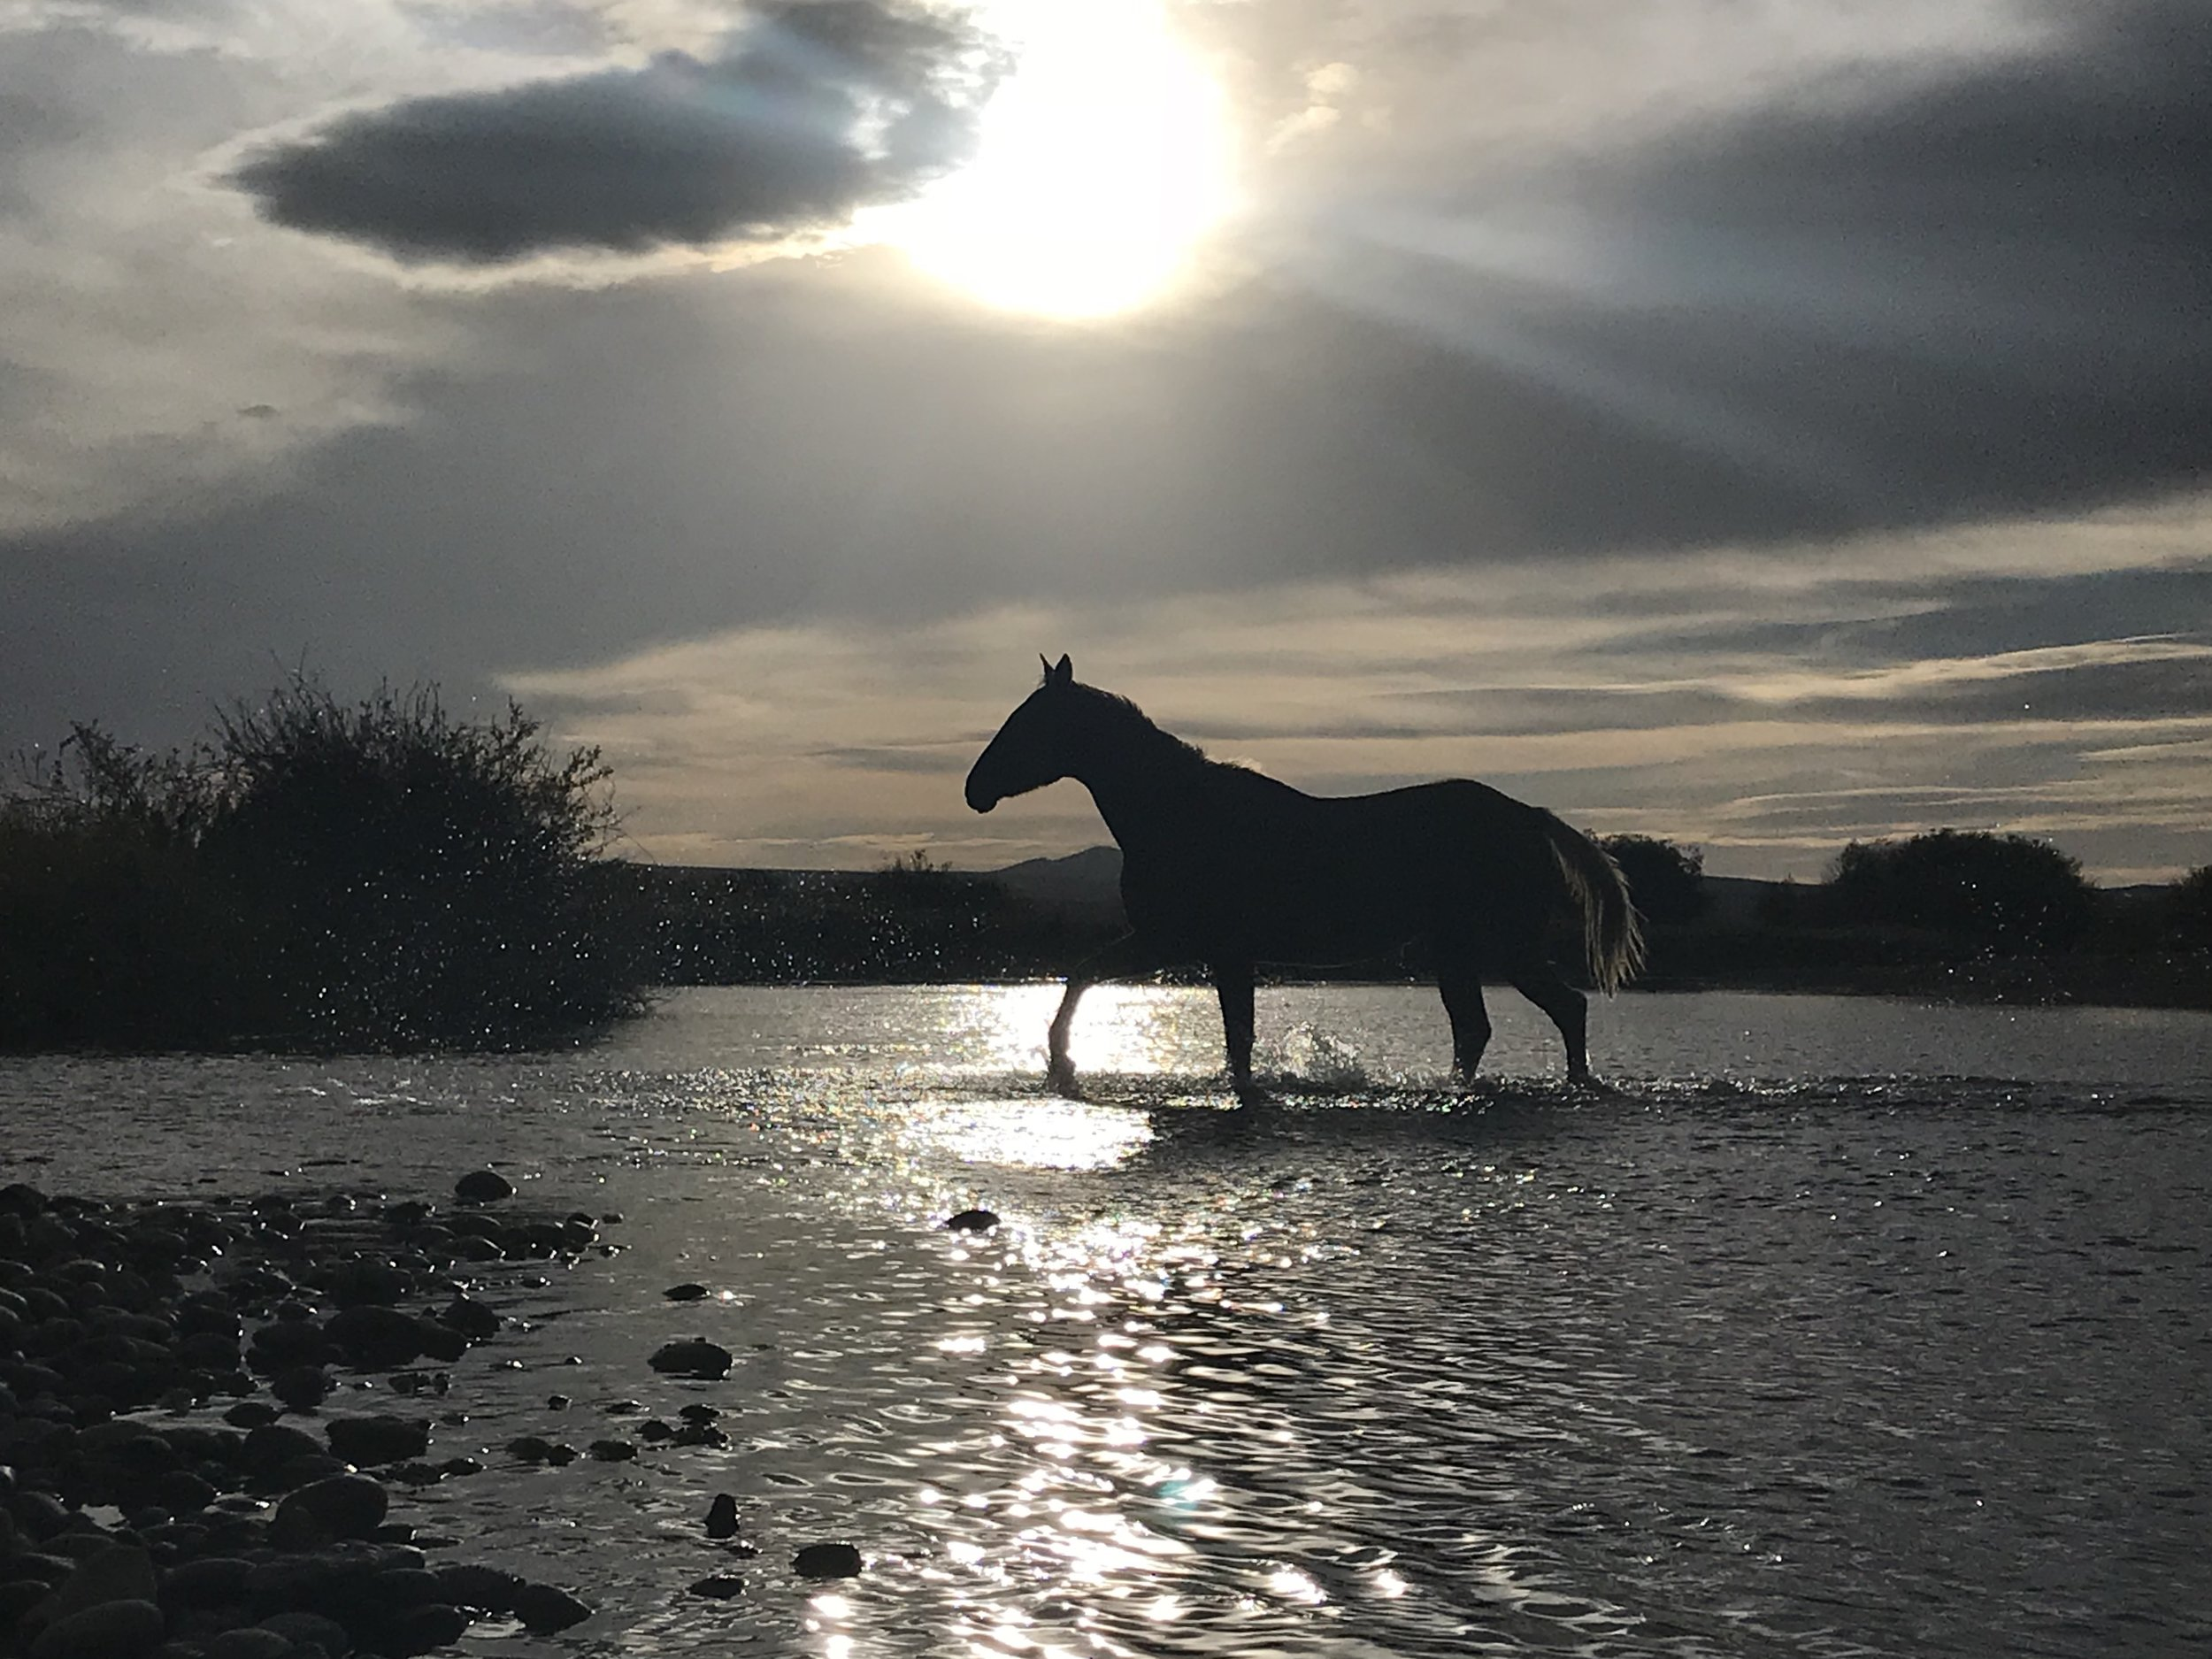 Horse Crossing Water.jpg